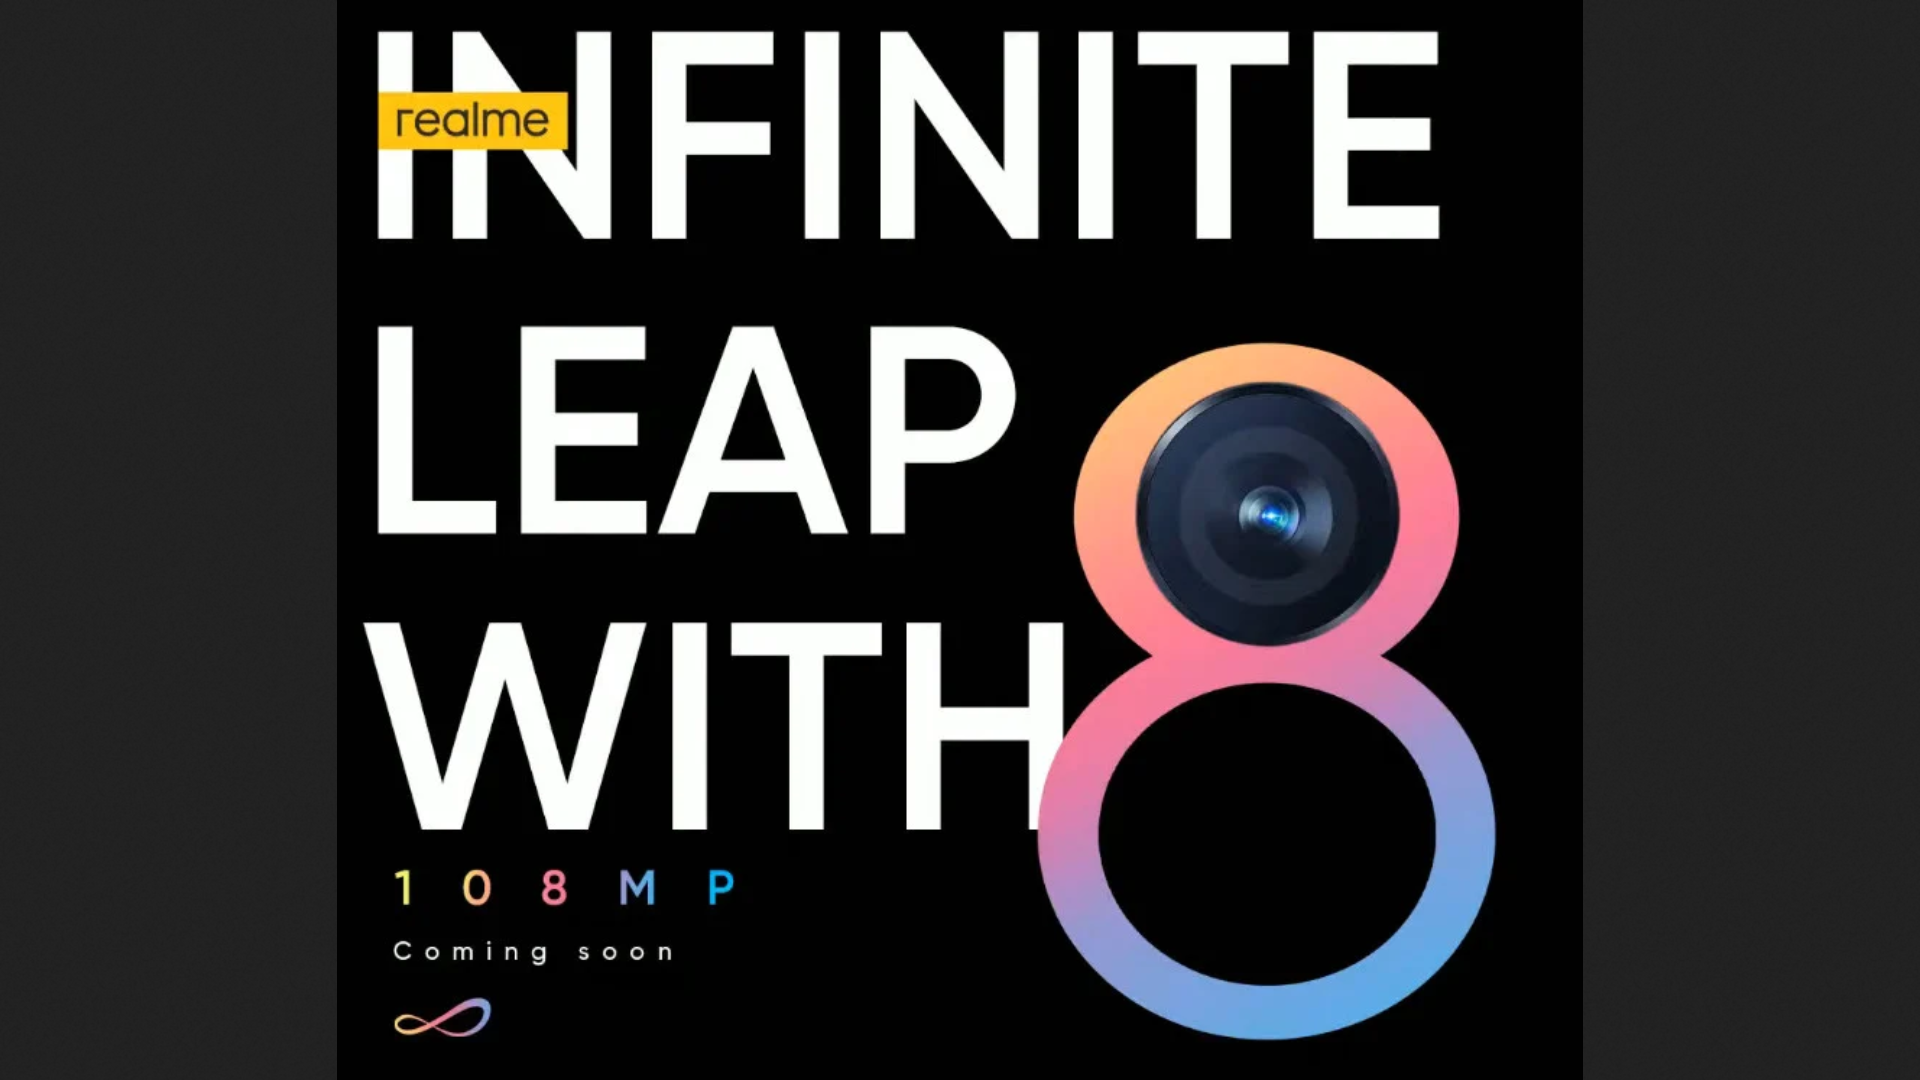 The Realme 8 Pro will debut with the 108MP ISOCELL HM2 sensor - Notebookcheck.net